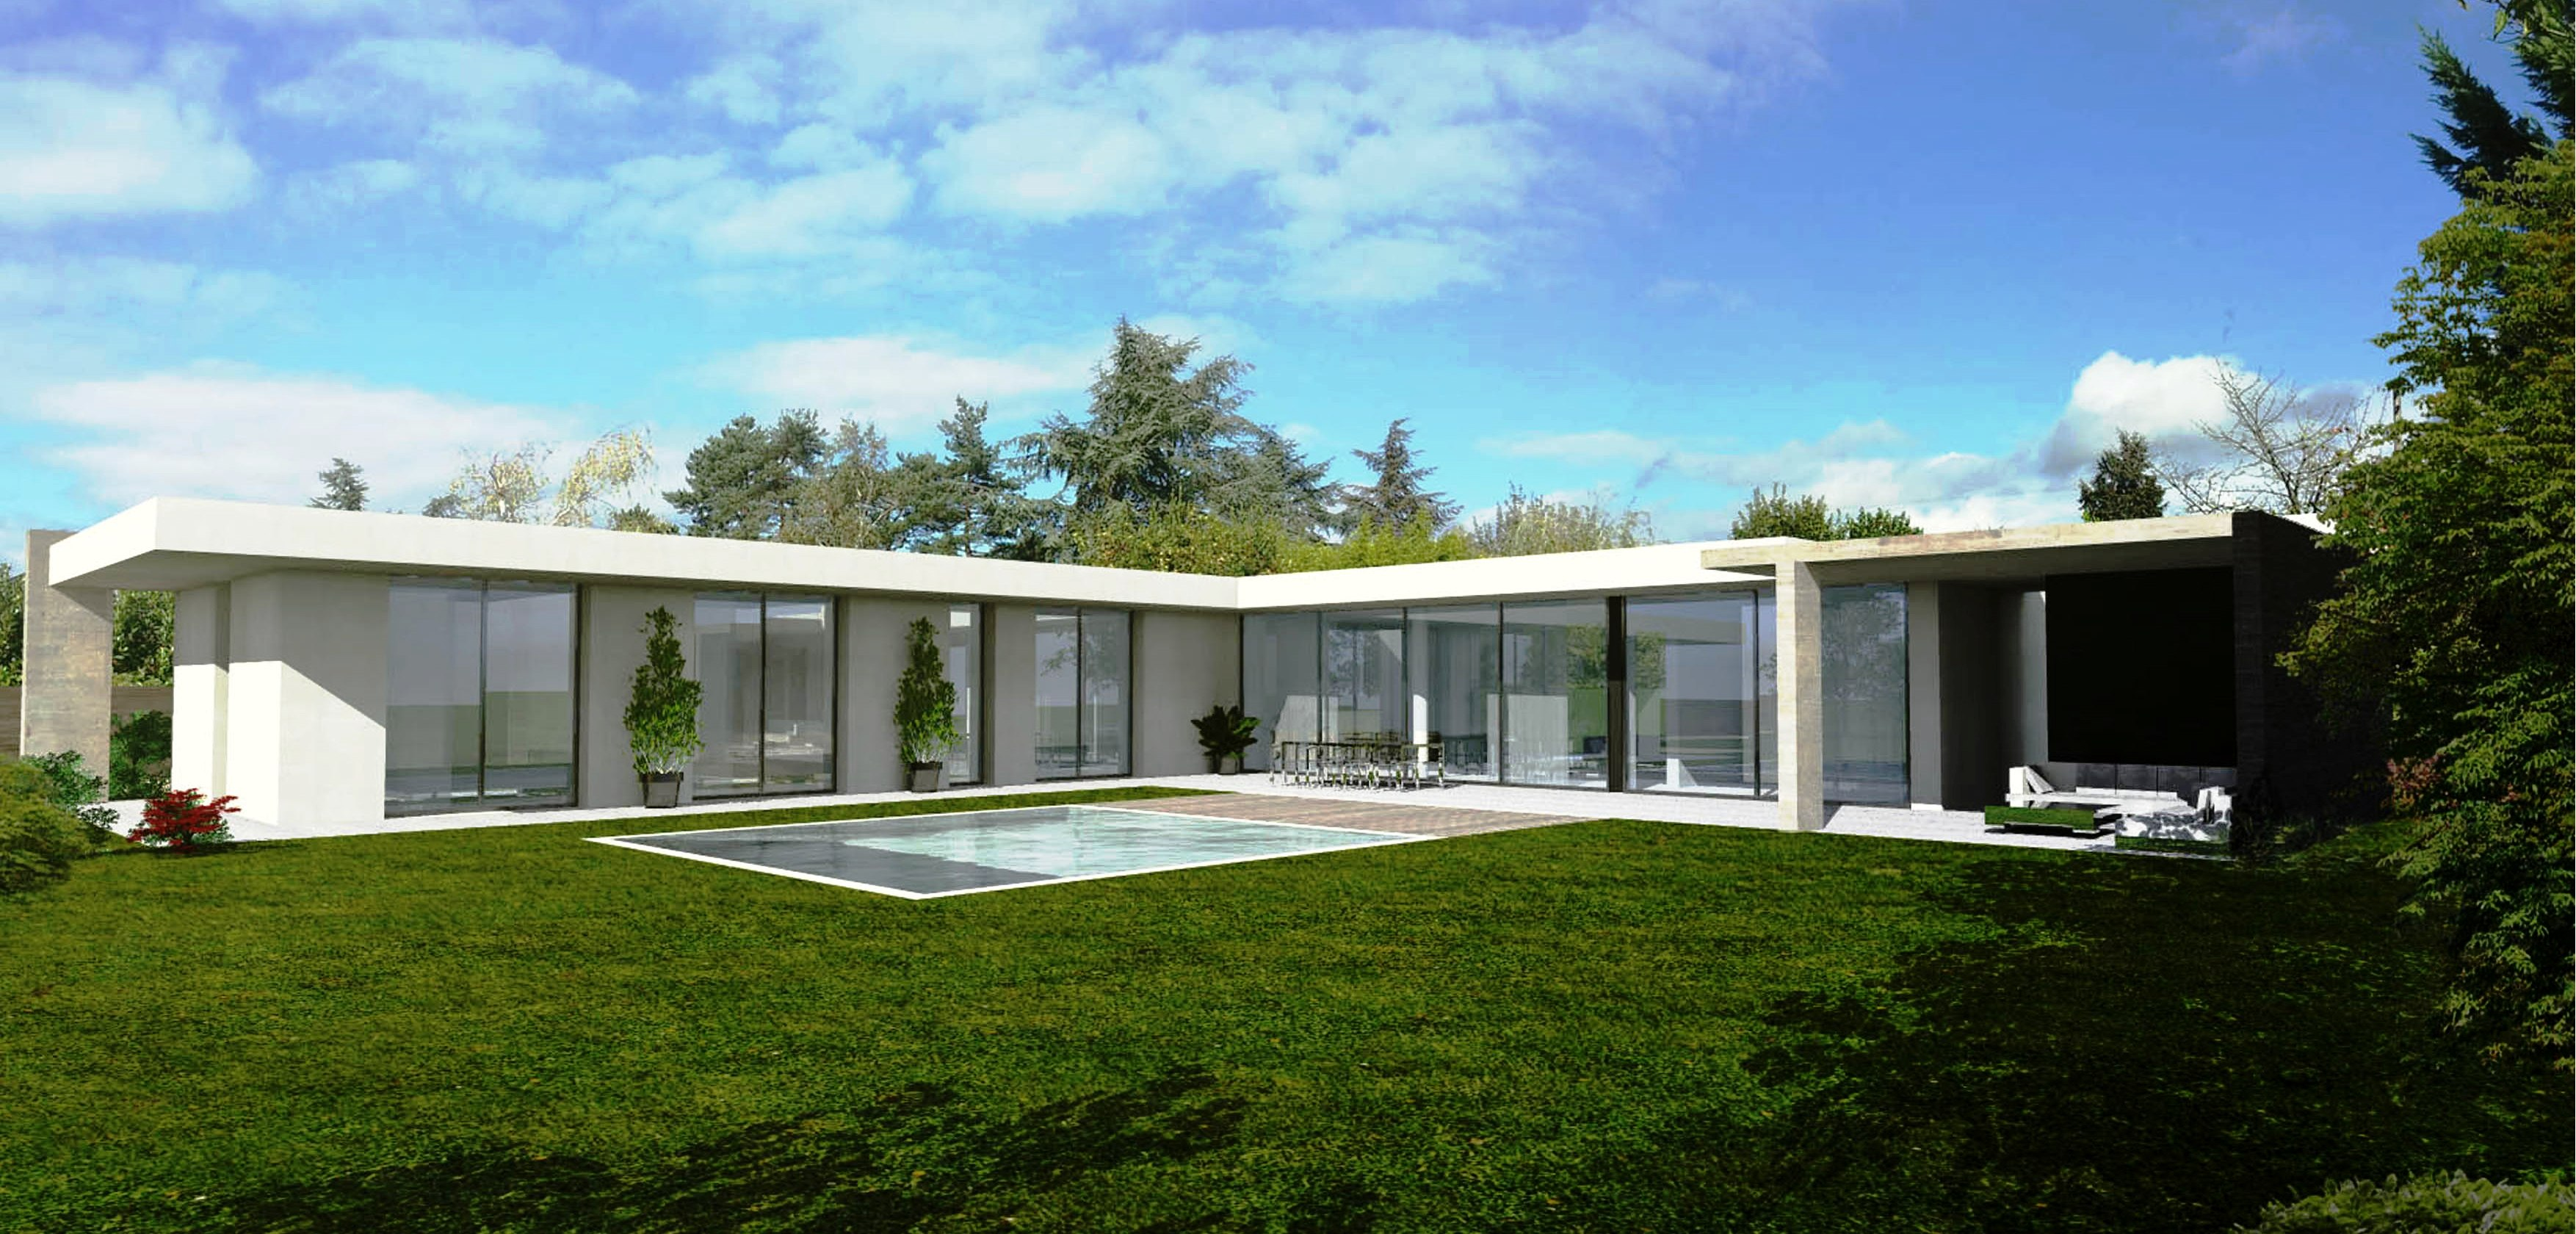 Plan architecte maison contemporaine maison moderne for Villa contemporaine plan